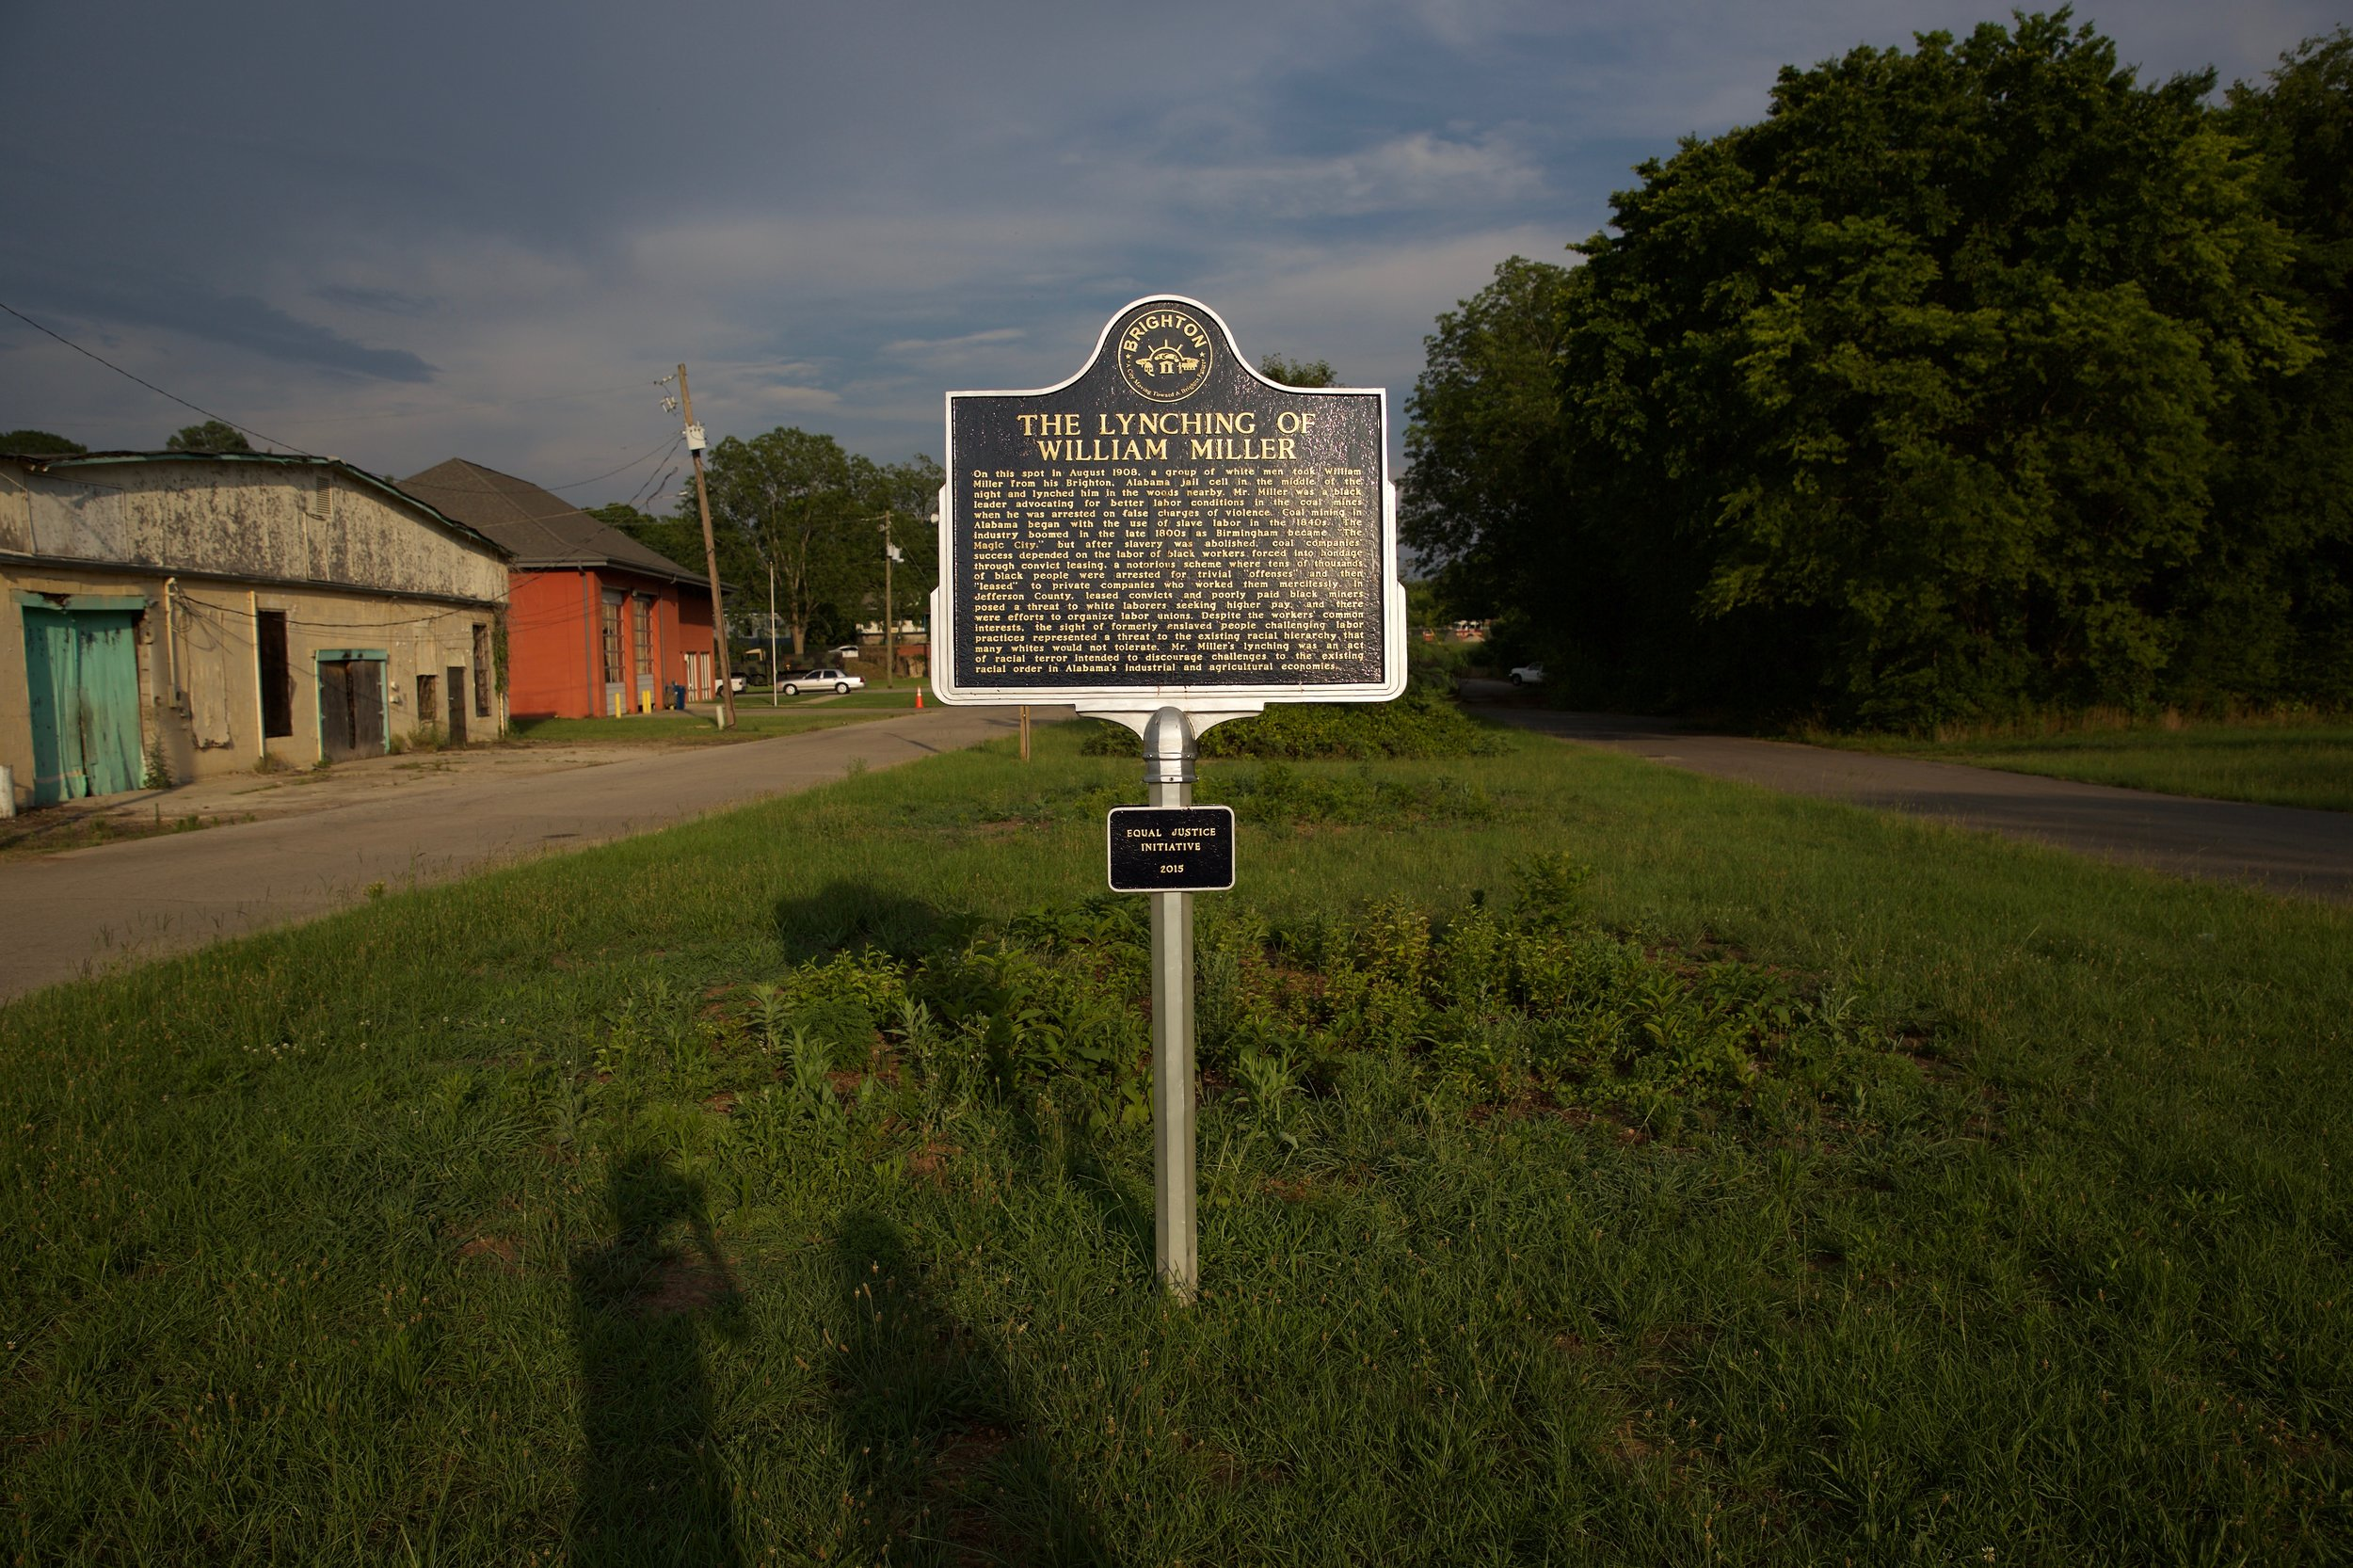 Uncovering Hidden History on the Road to Clanton - Co-director Lance Warren interrogates the silence around lynching in the South.